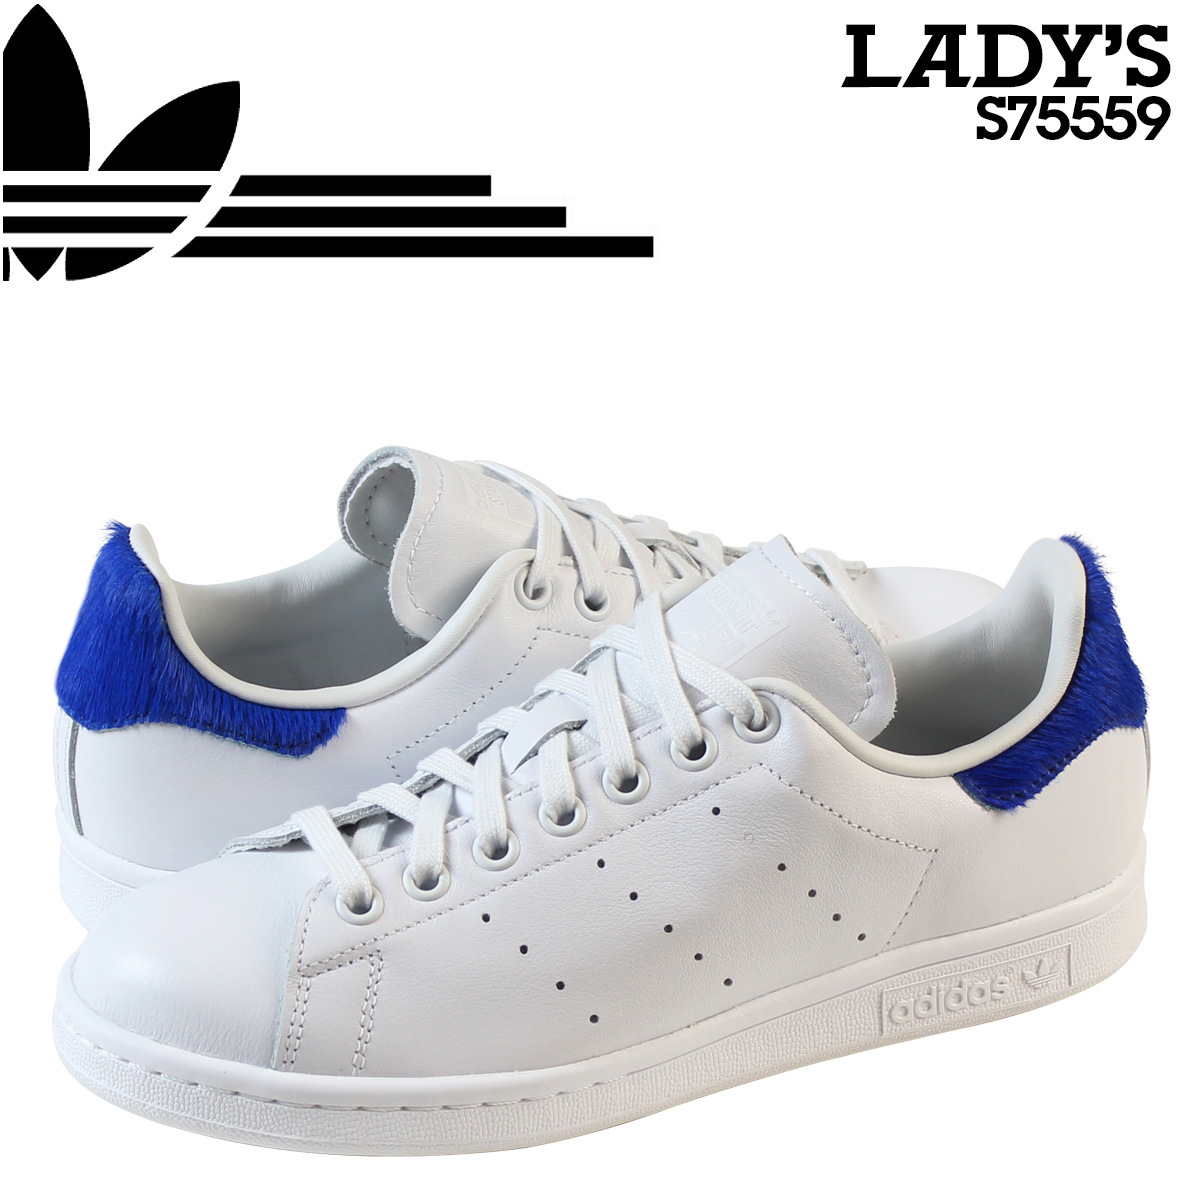 af77235a990867 Adidas originals adidas Originals Stan Smith sneakers Womens STAN SMITH W  S75559 shoes white